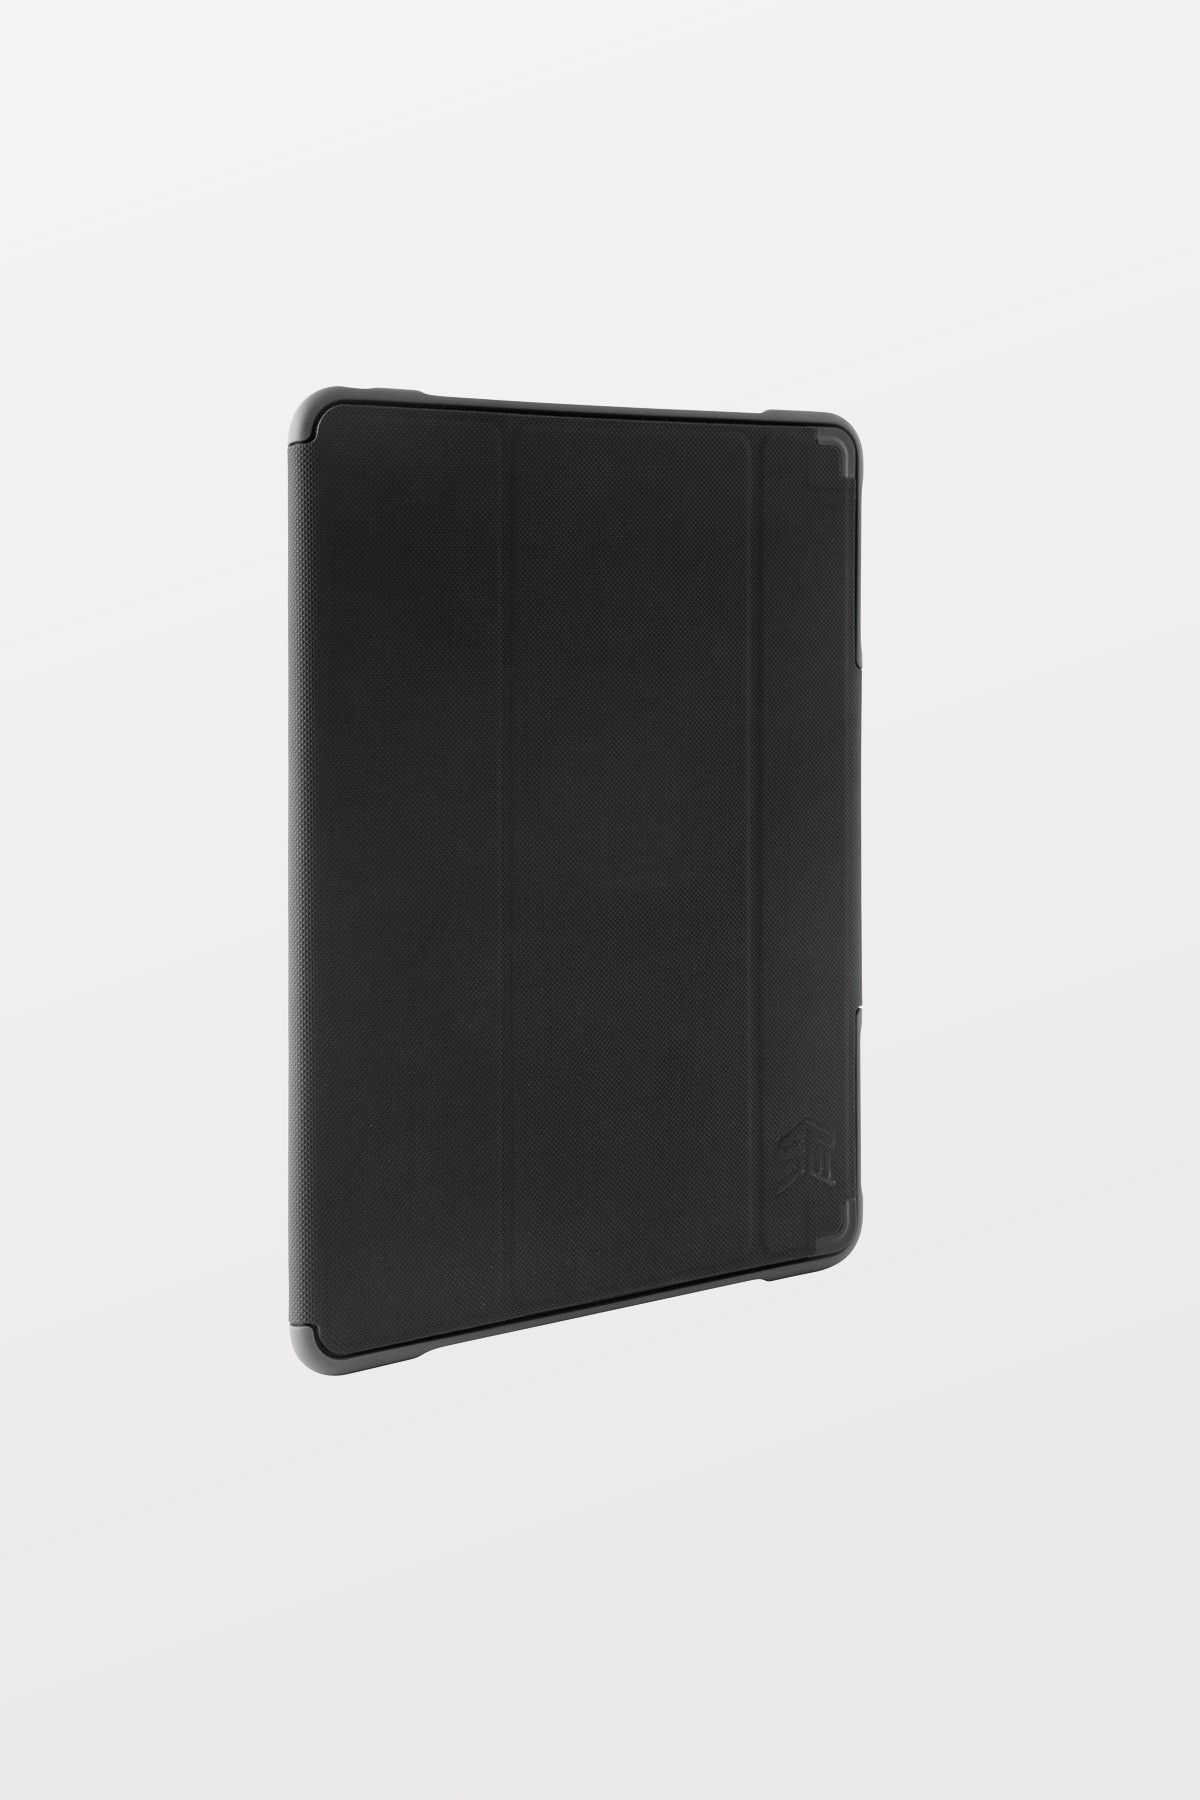 STM Dux Plus for iPad Pro 10.5-inch - Black